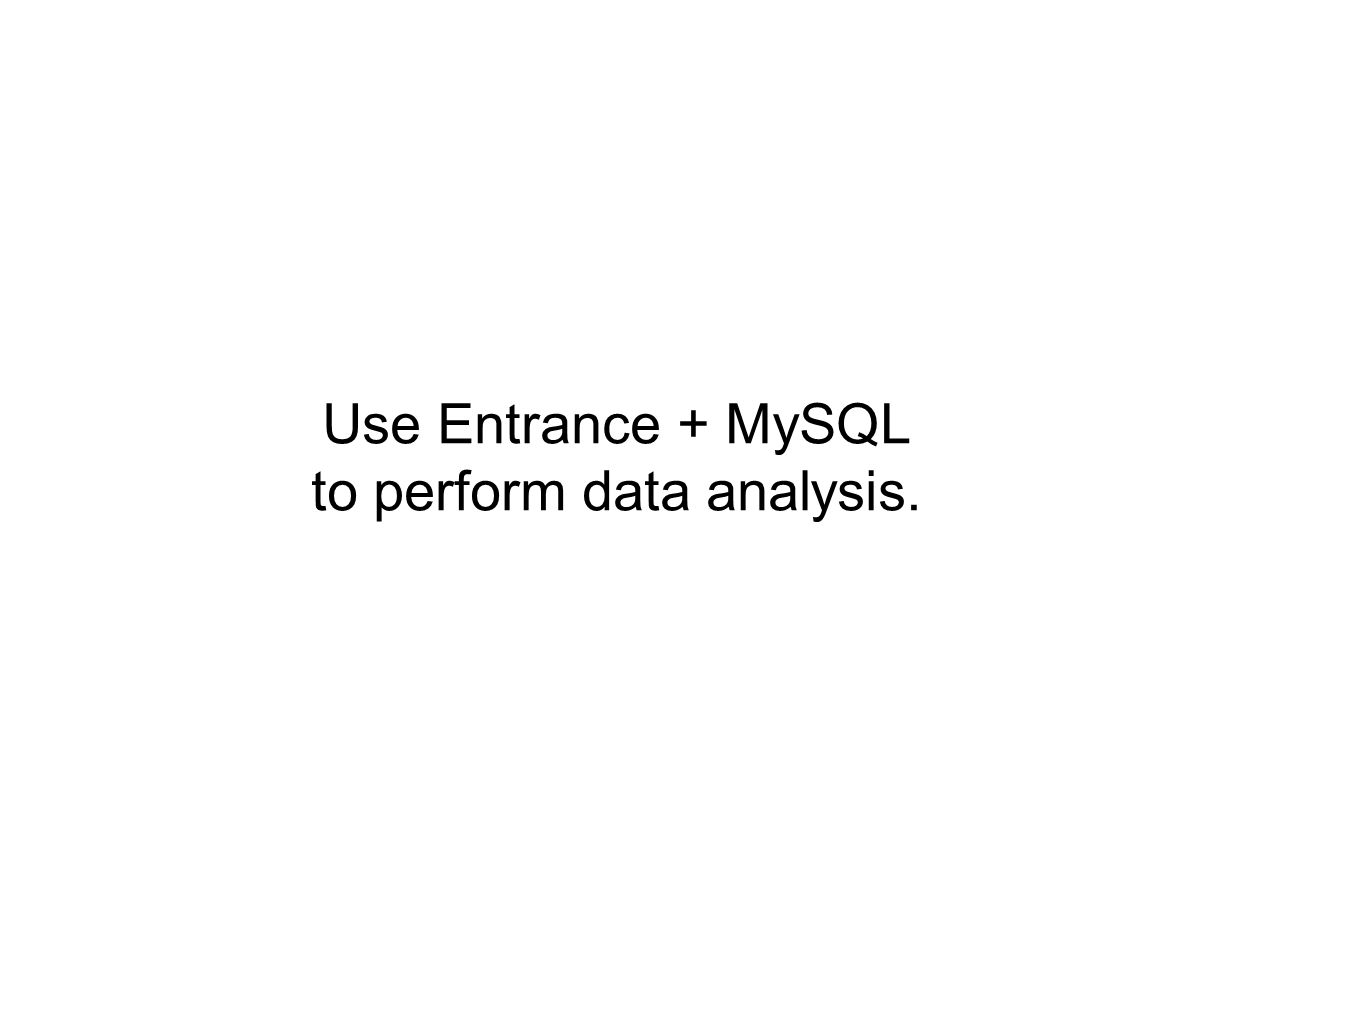 Use Entrance + MySQL to perform data analysis.